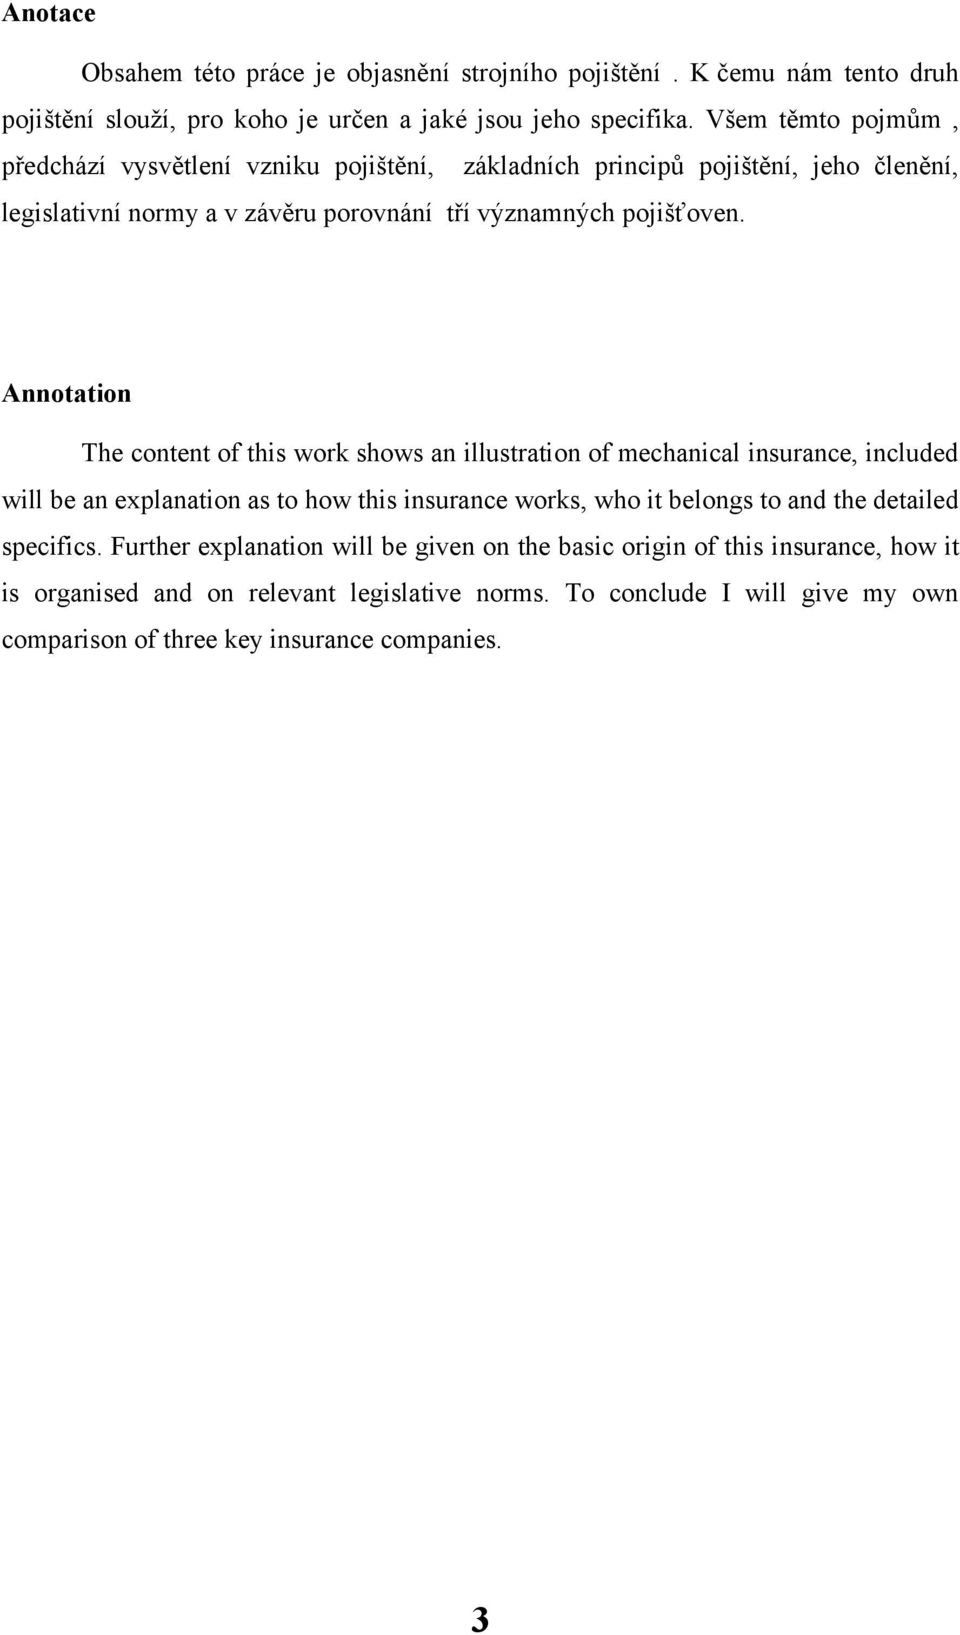 Annotation The content of this work shows an illustration of mechanical insurance, included will be an explanation as to how this insurance works, who it belongs to and the